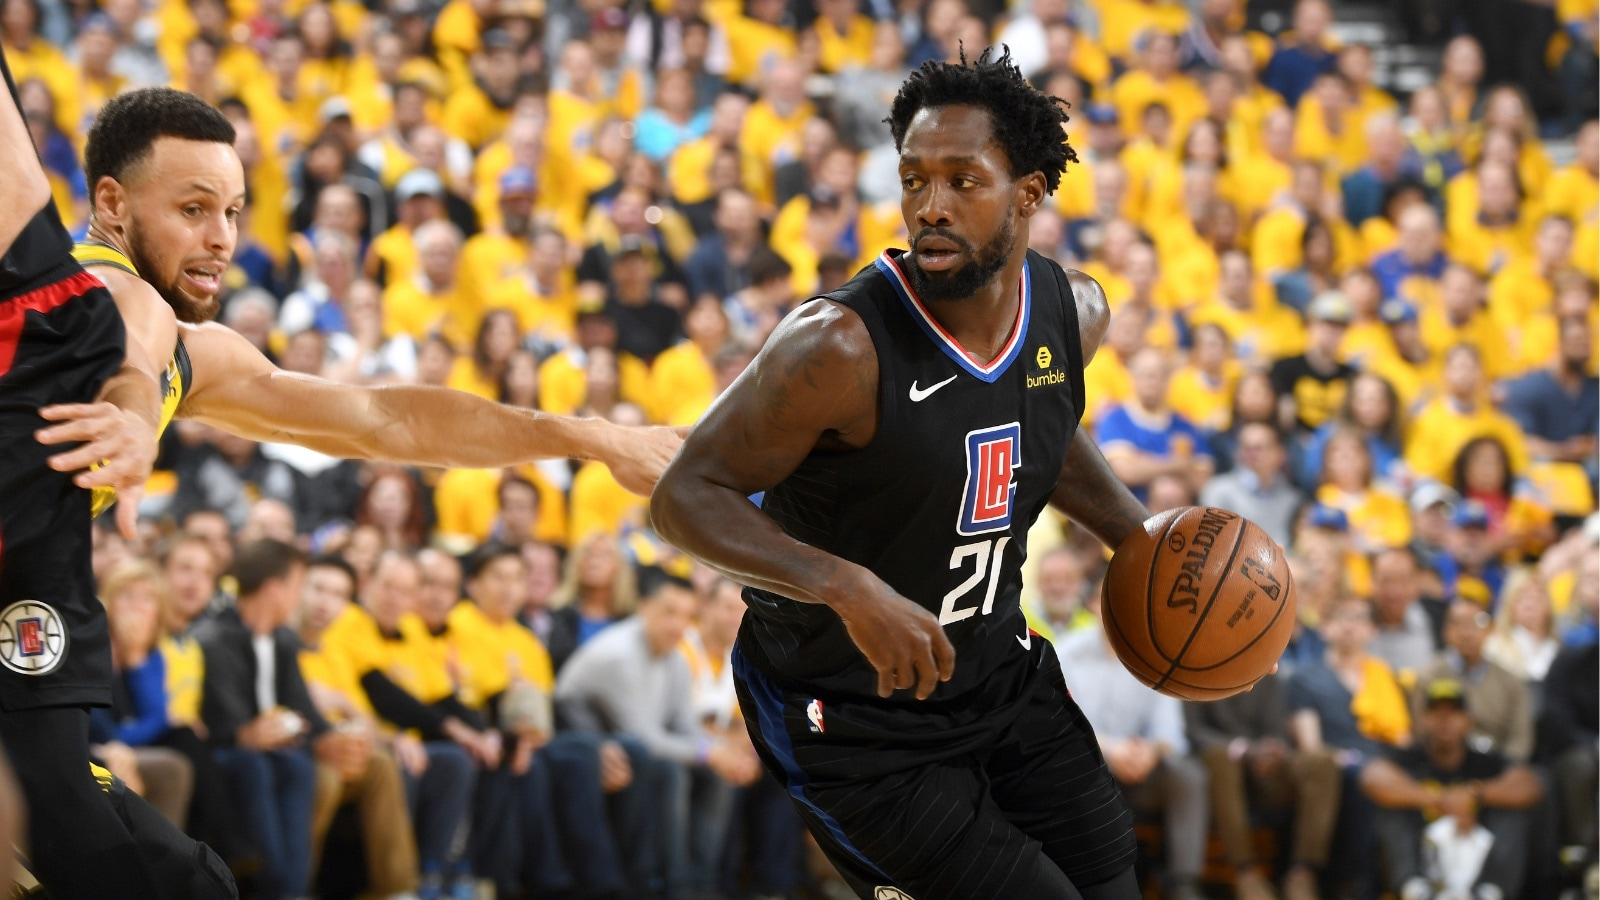 Patrick Beverley #21 of the LA Clippers handles the ball against the Golden State Warriors in Game Two of Round One during the 2019 NBA Playoffs on April 15, 2019 at ORACLE Arena in Oakland, California